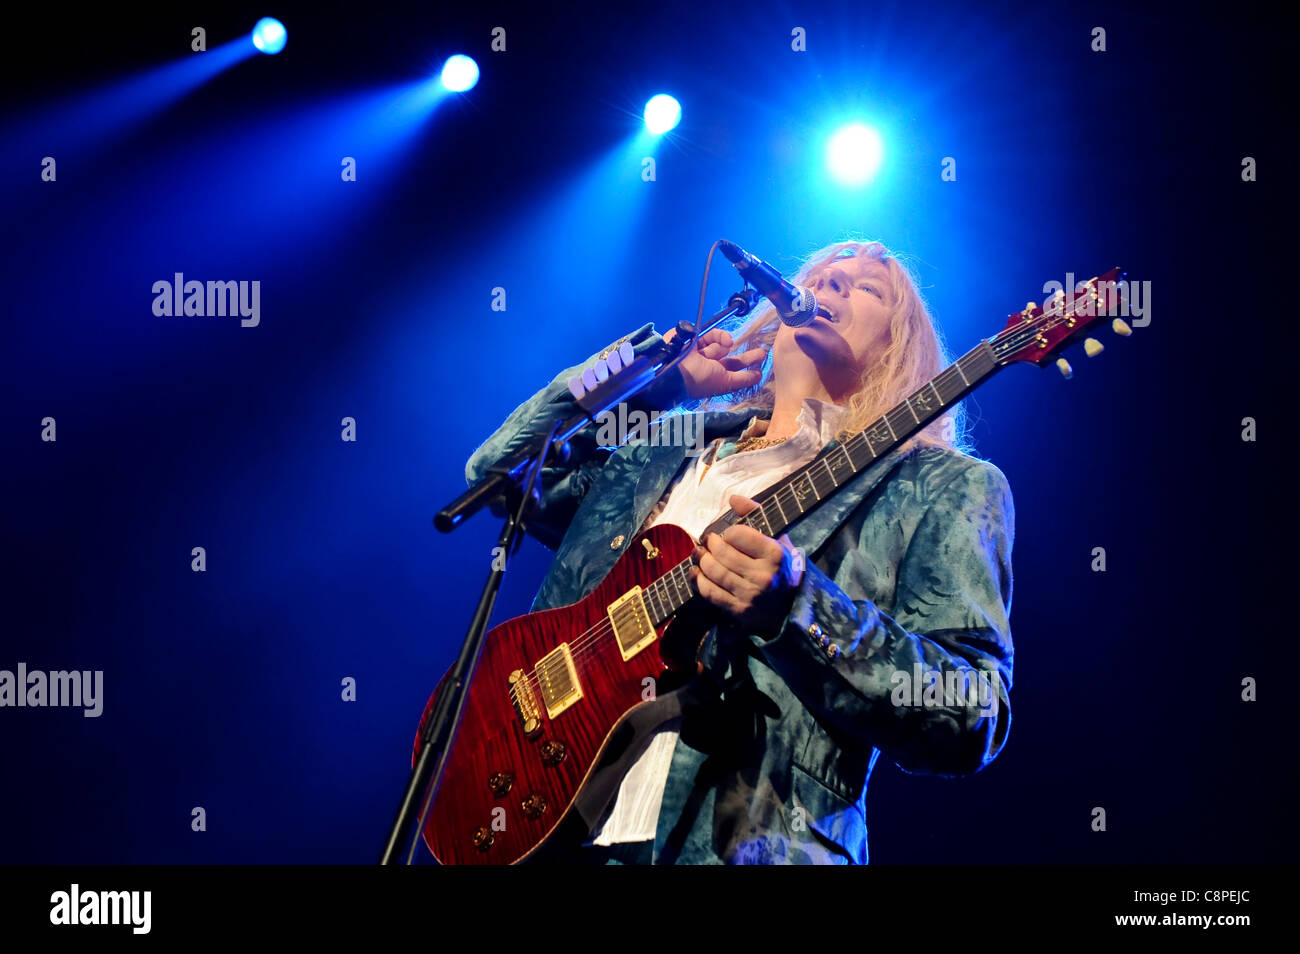 Spinal Tap play their 'One Night Only World Tour', at Wembley Arena, London, 30th June 2009. - Stock Image